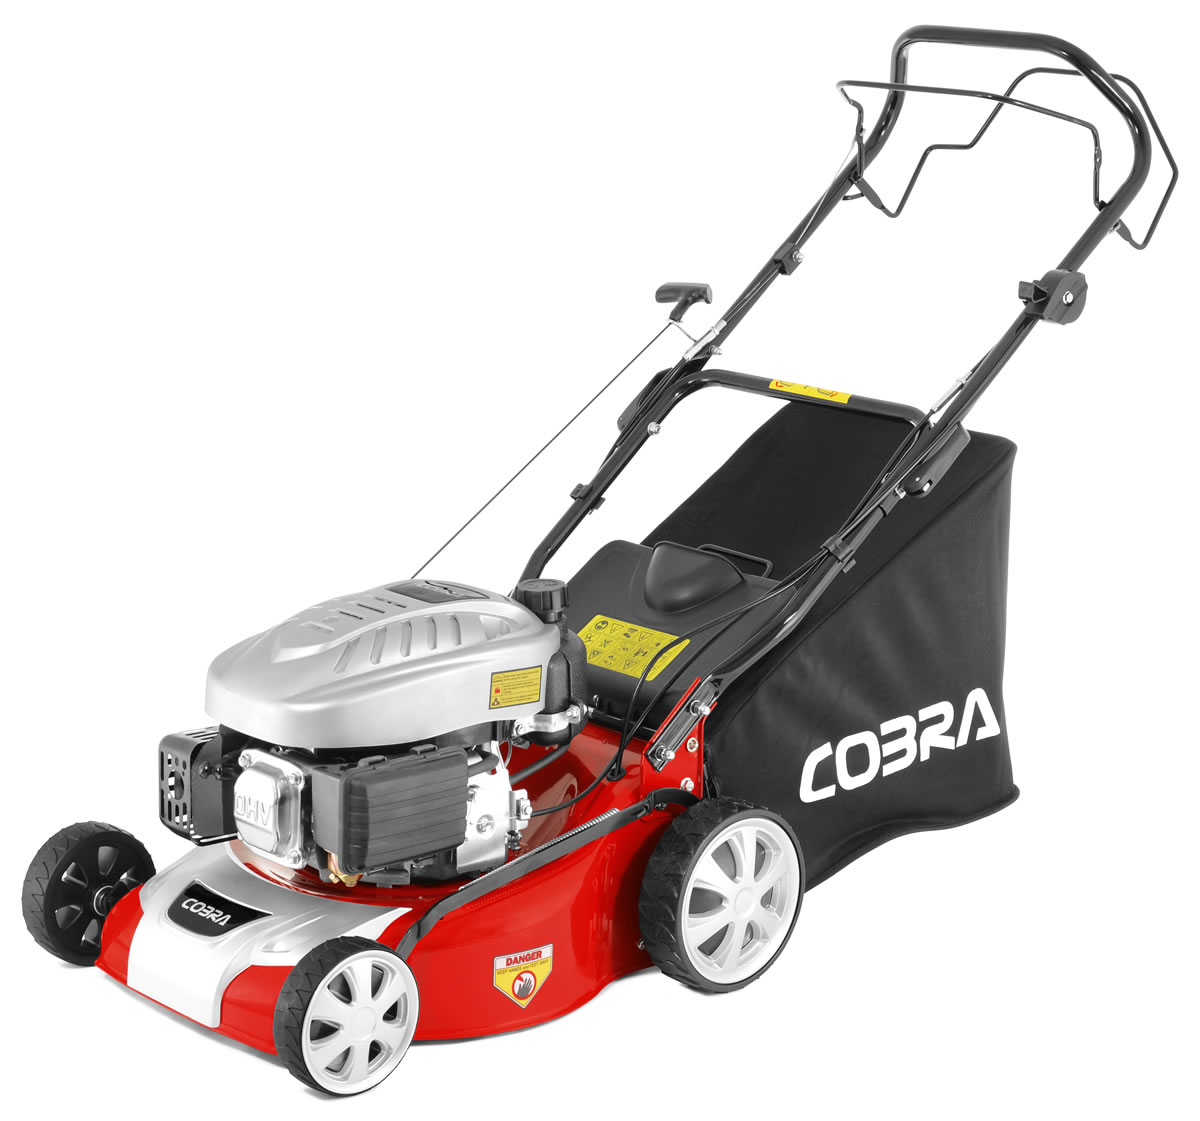 COBRA petrol lawnmower M40SPC